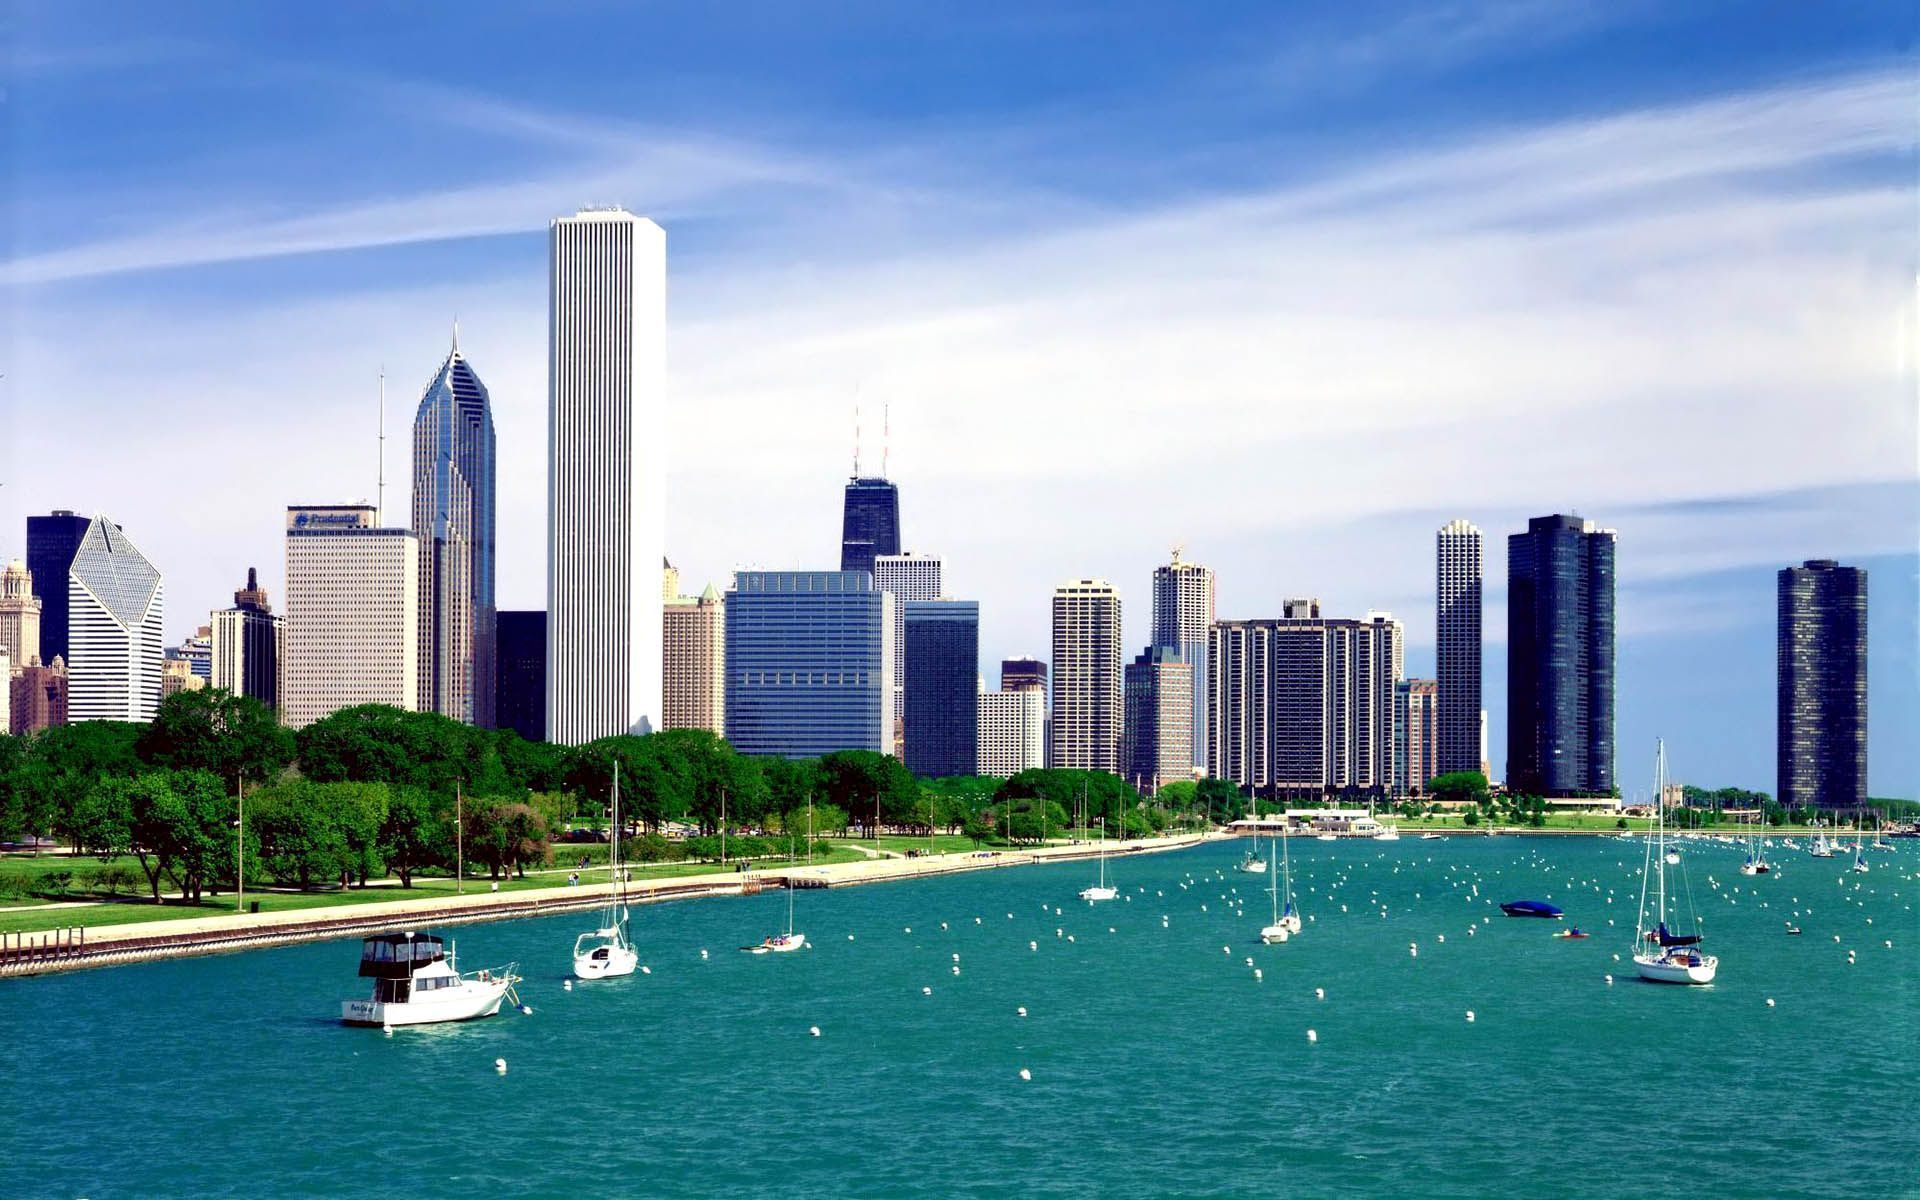 Buildings City Chicago Illinois Lake Michigan 1920x1200